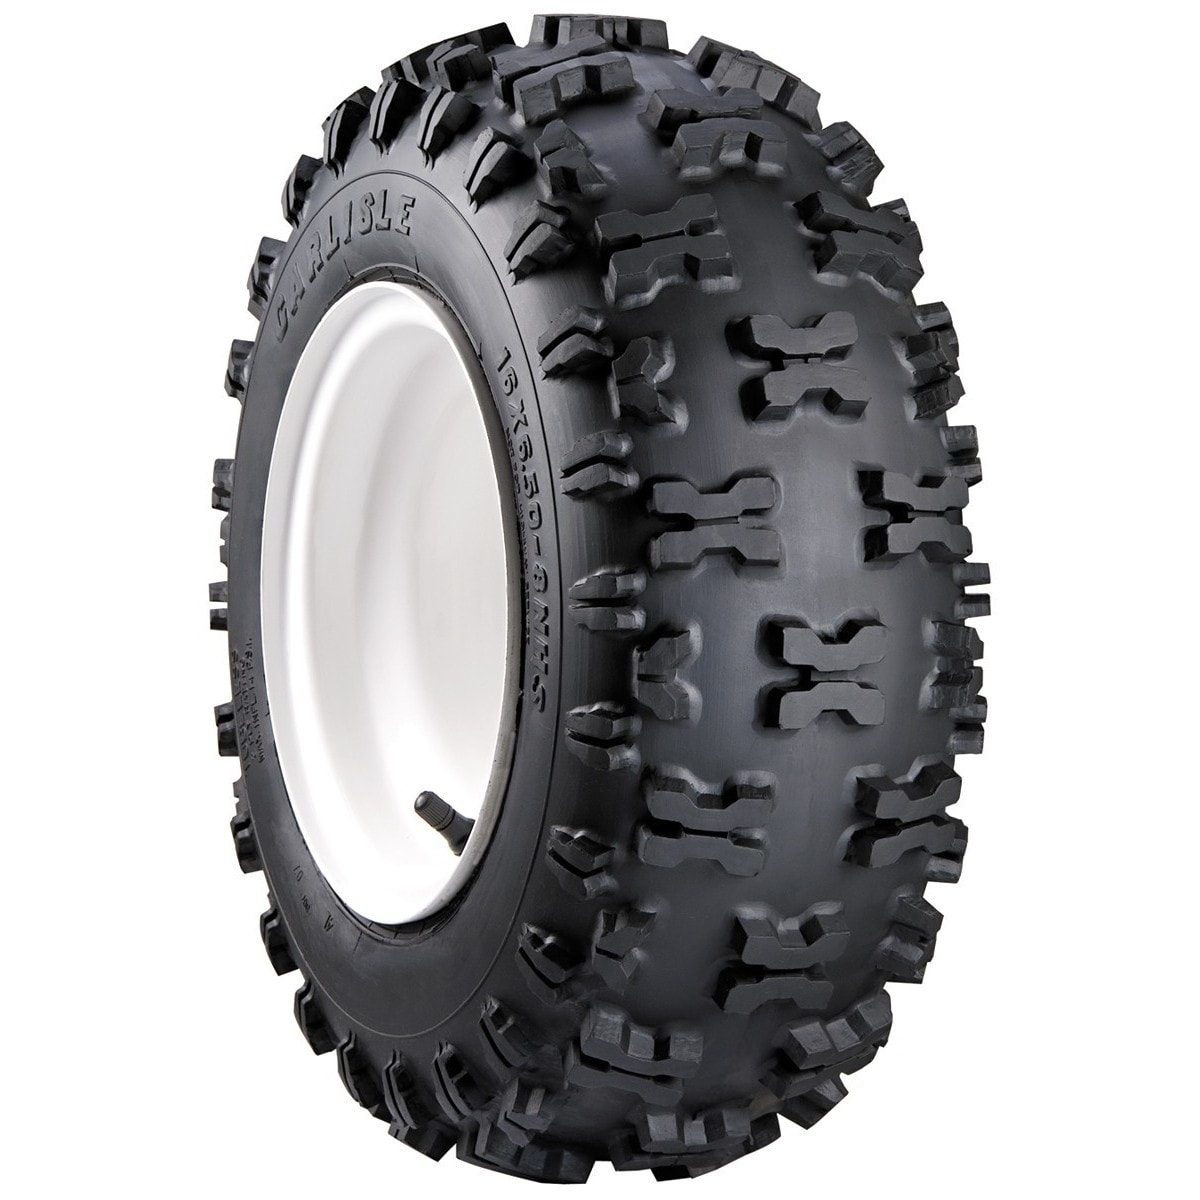 Carlisle Snow Hog Snow Thrower Tire - 18X650-8 LRB/4 ply ...